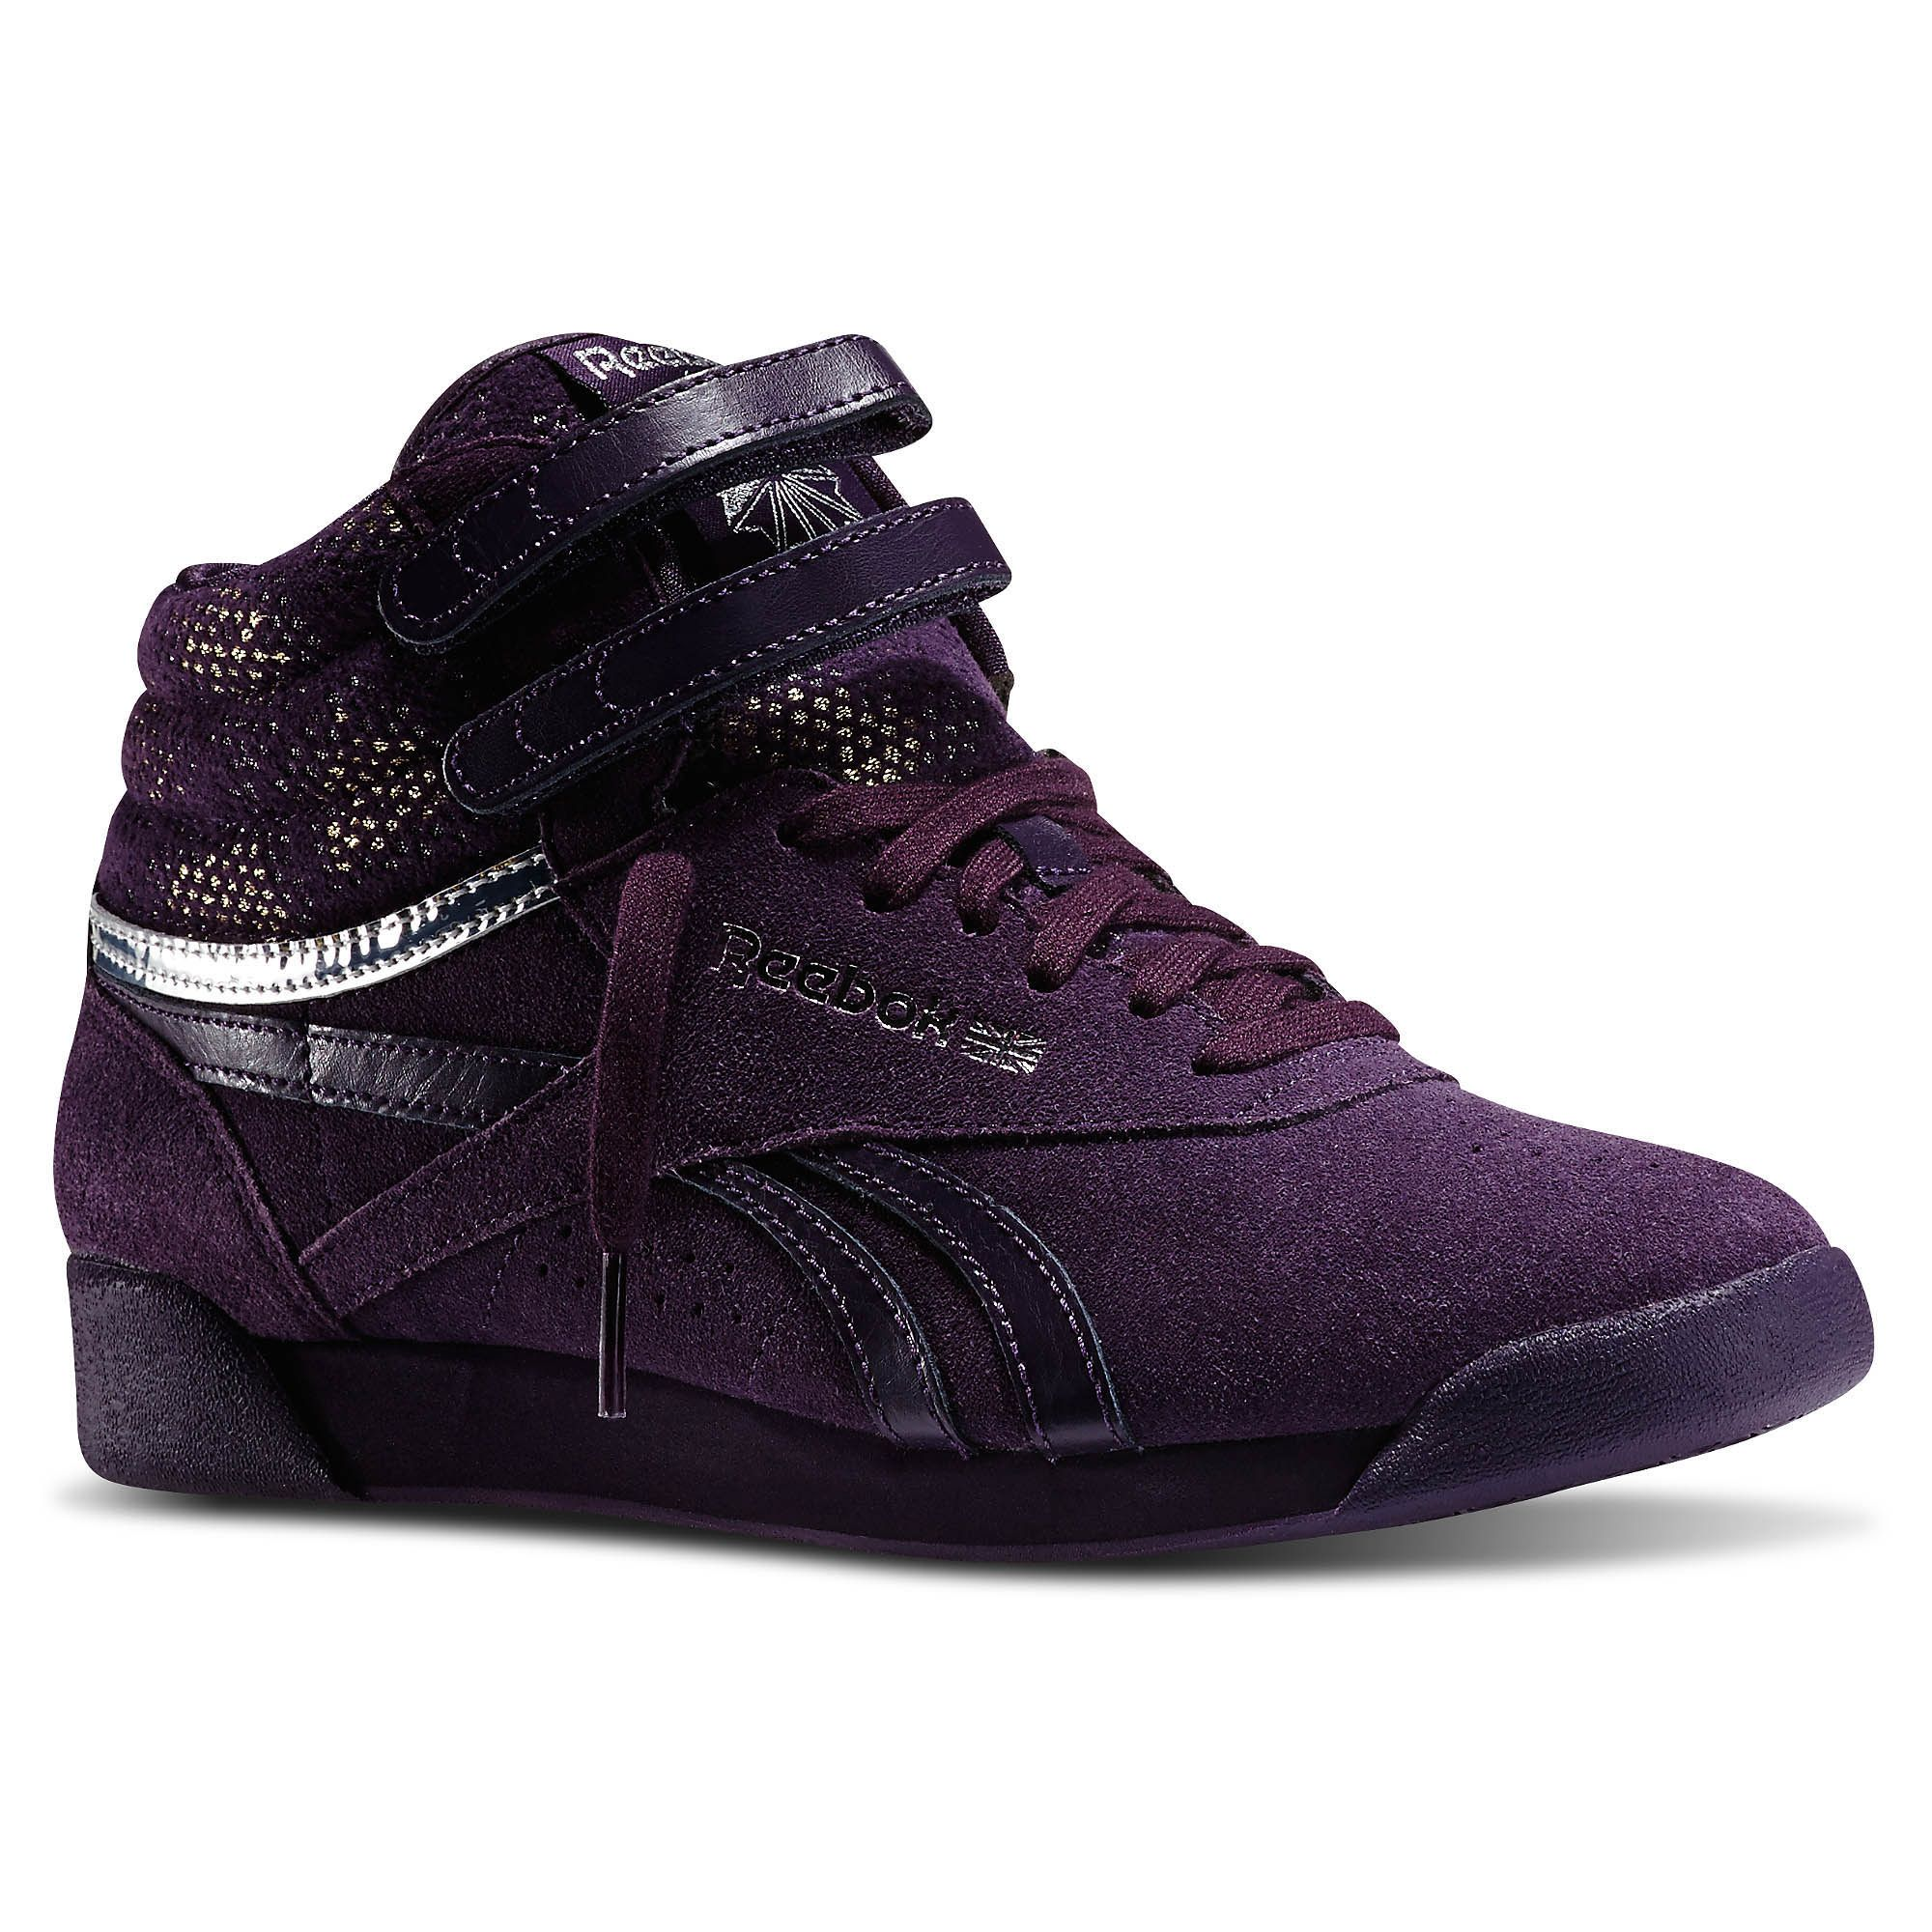 Reebok-running-shoes-and-sportsshoes-for-women (18)